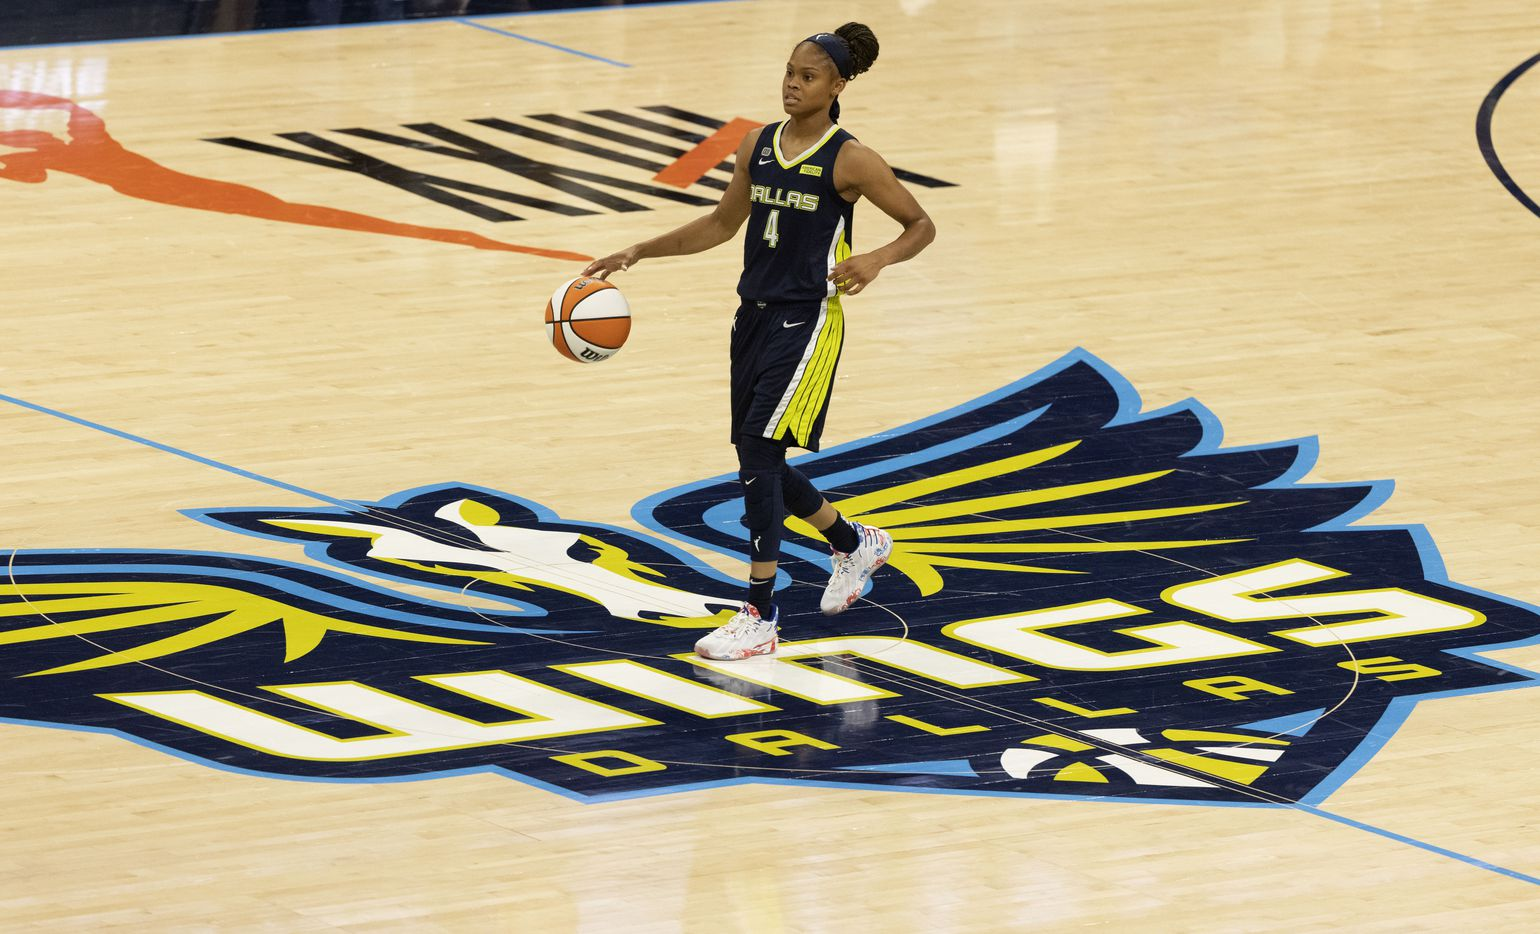 Dallas Wings guard Moriah Jefferson (4) moves the ball up the court against the Atlanta Dream during the second half of their WNBA basketball game in Arlington, Texas on Sept. 2, 2021. Dallas won 72-68. (Michael Ainsworth/Special Contributor)